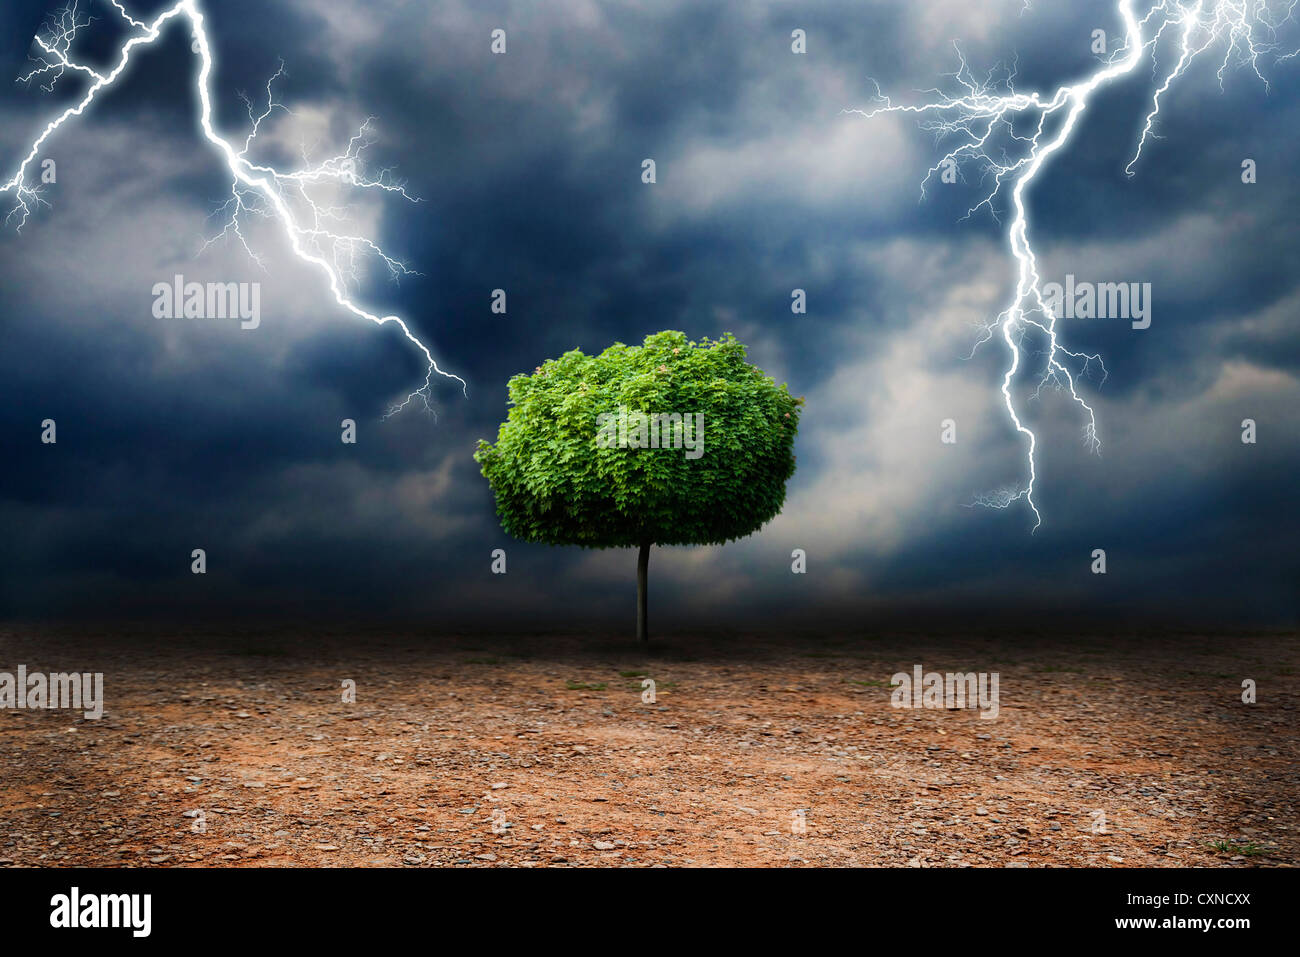 lone tree on a desert land, under a storm, global warming and climate change concept - Stock Image